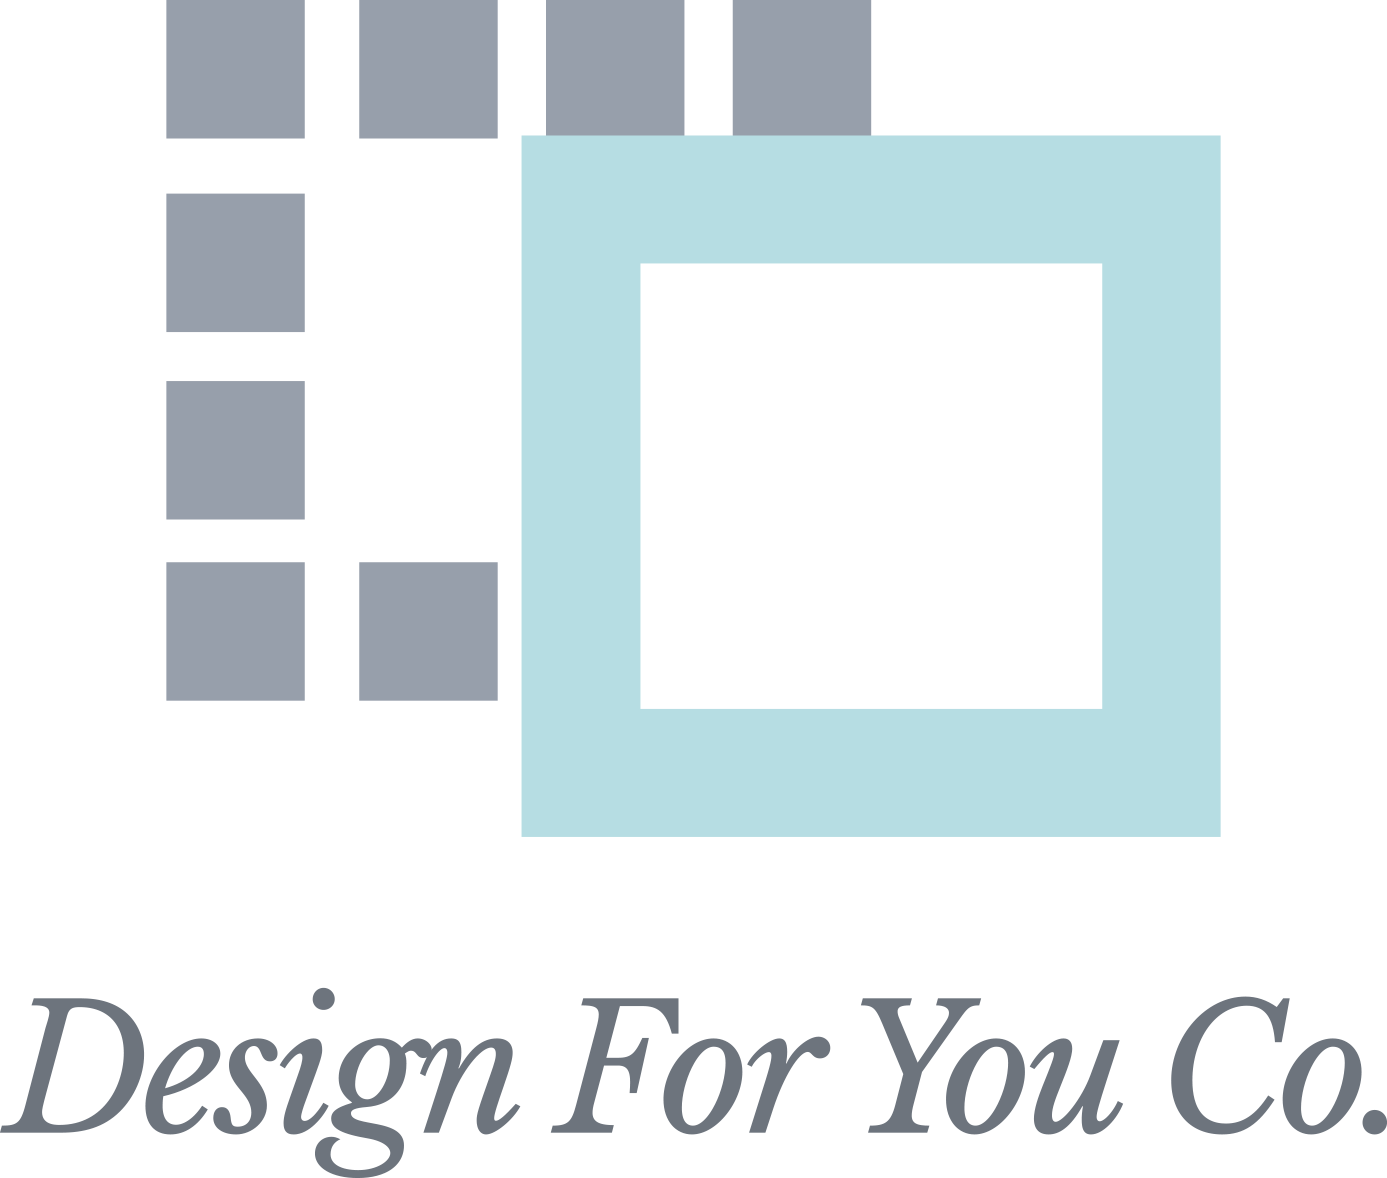 Design For You